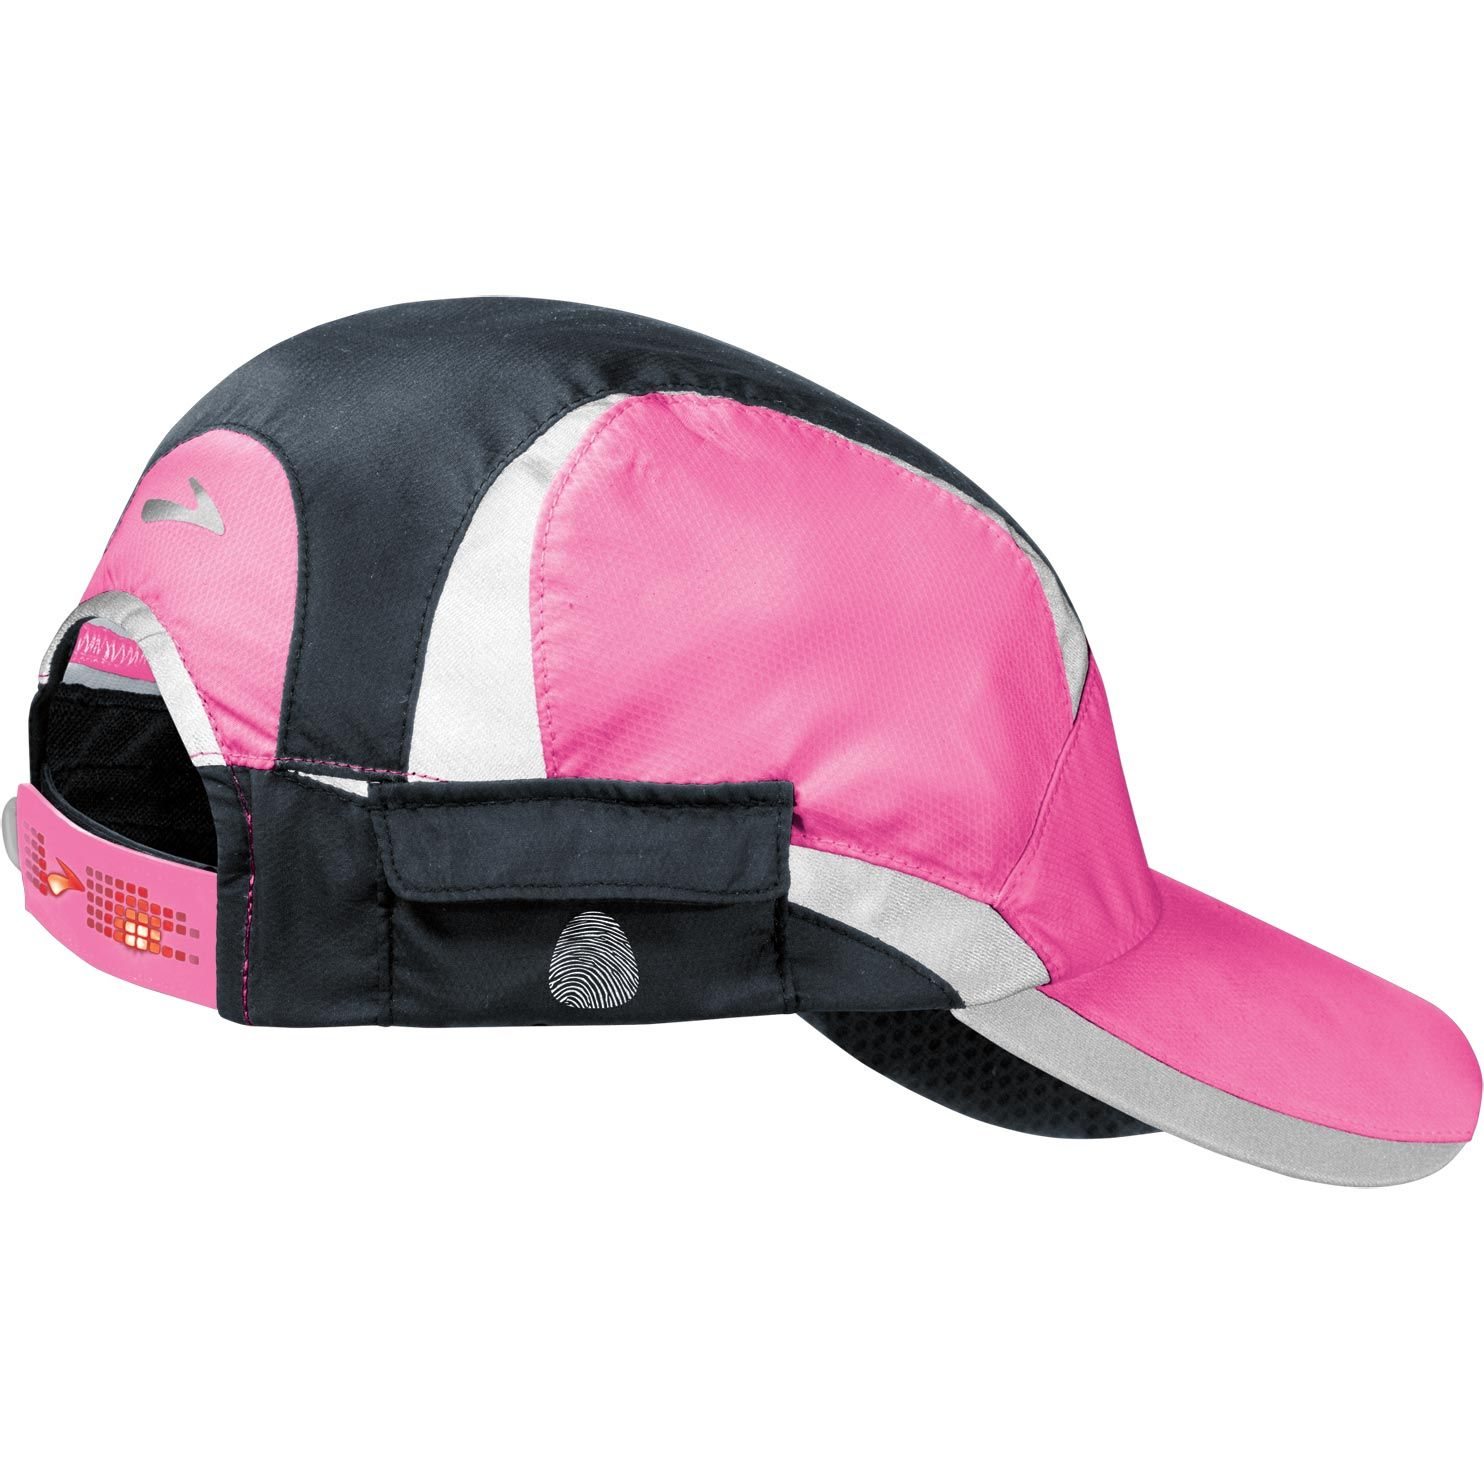 Nighlife Hat: nighttime running hat with LED light